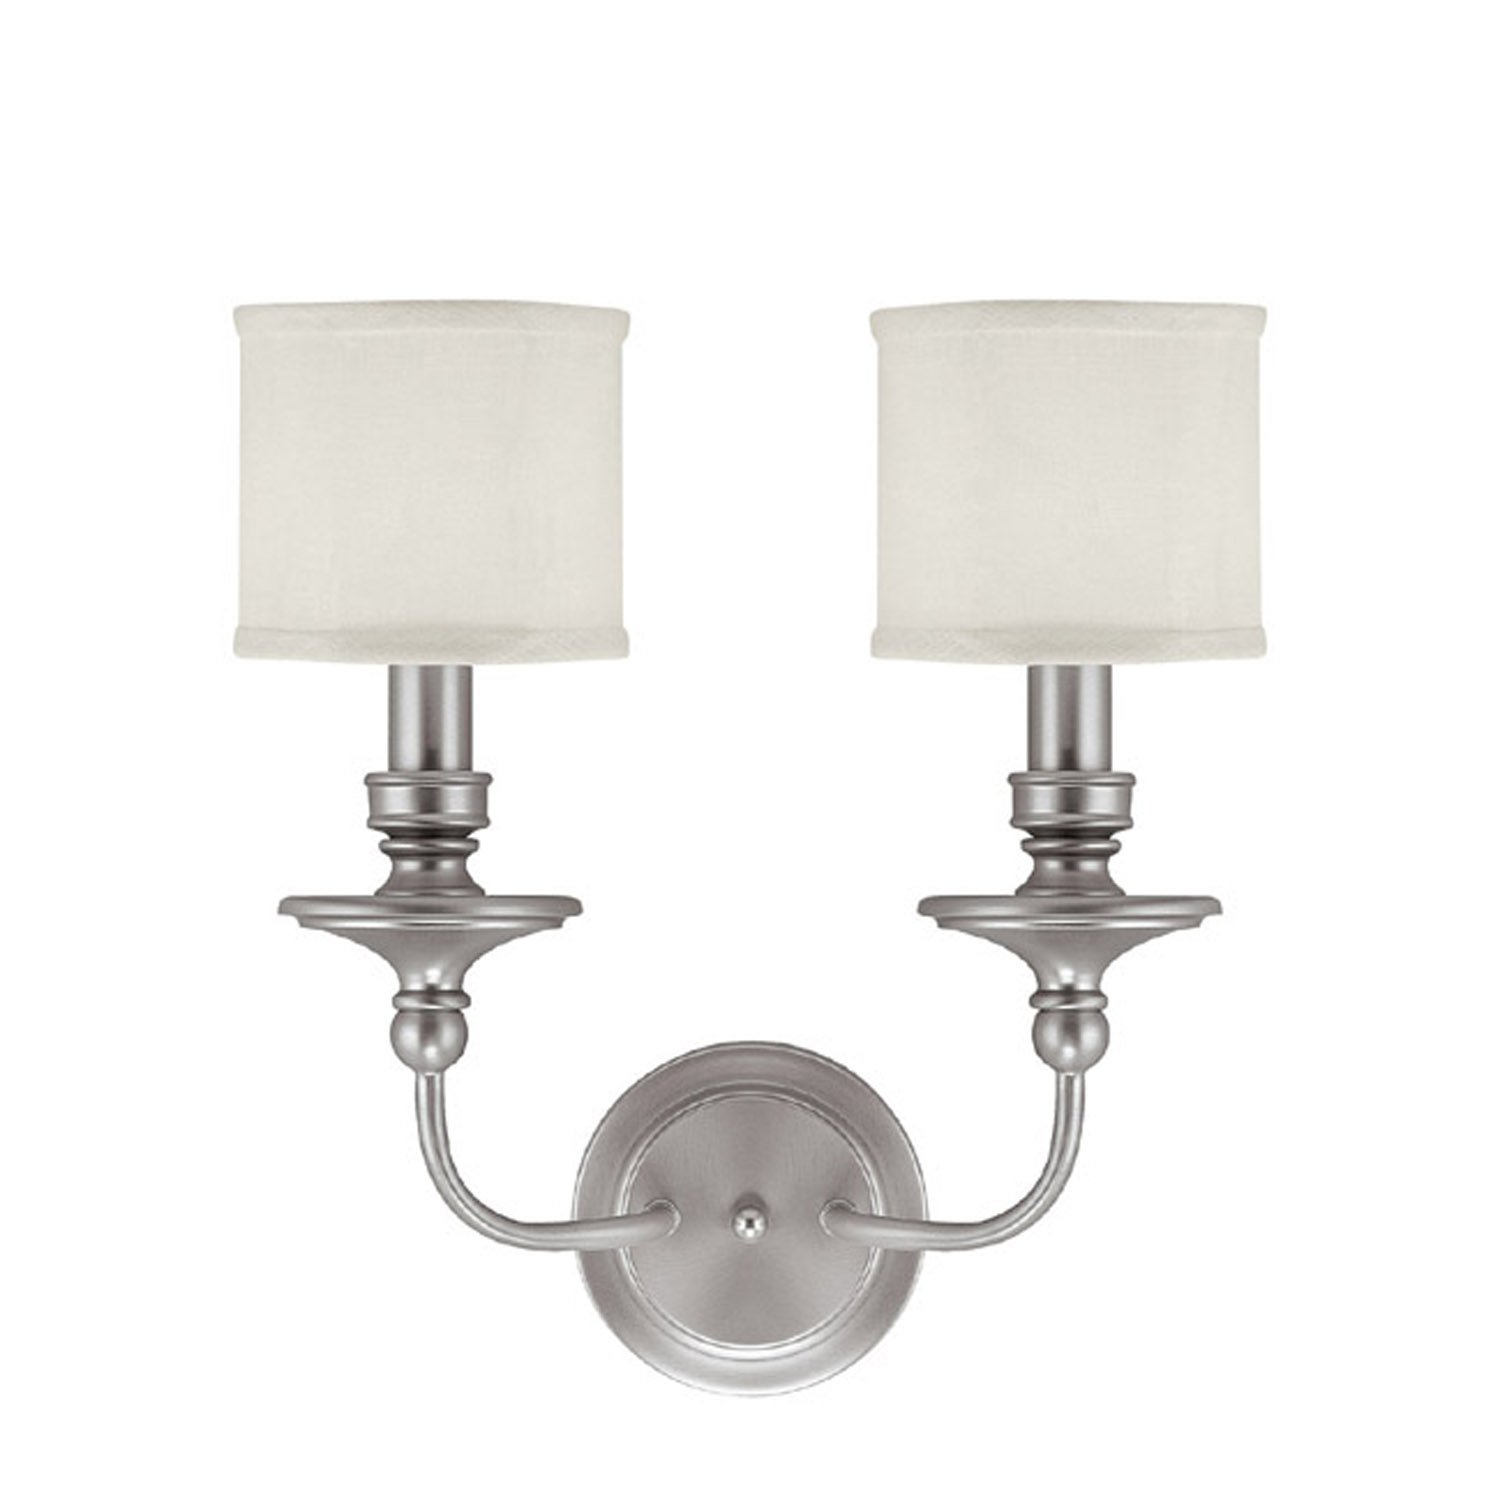 Capital Lighting 1232PN 451 Wall Sconce With White Fabric Shades Polished Nickel Finish